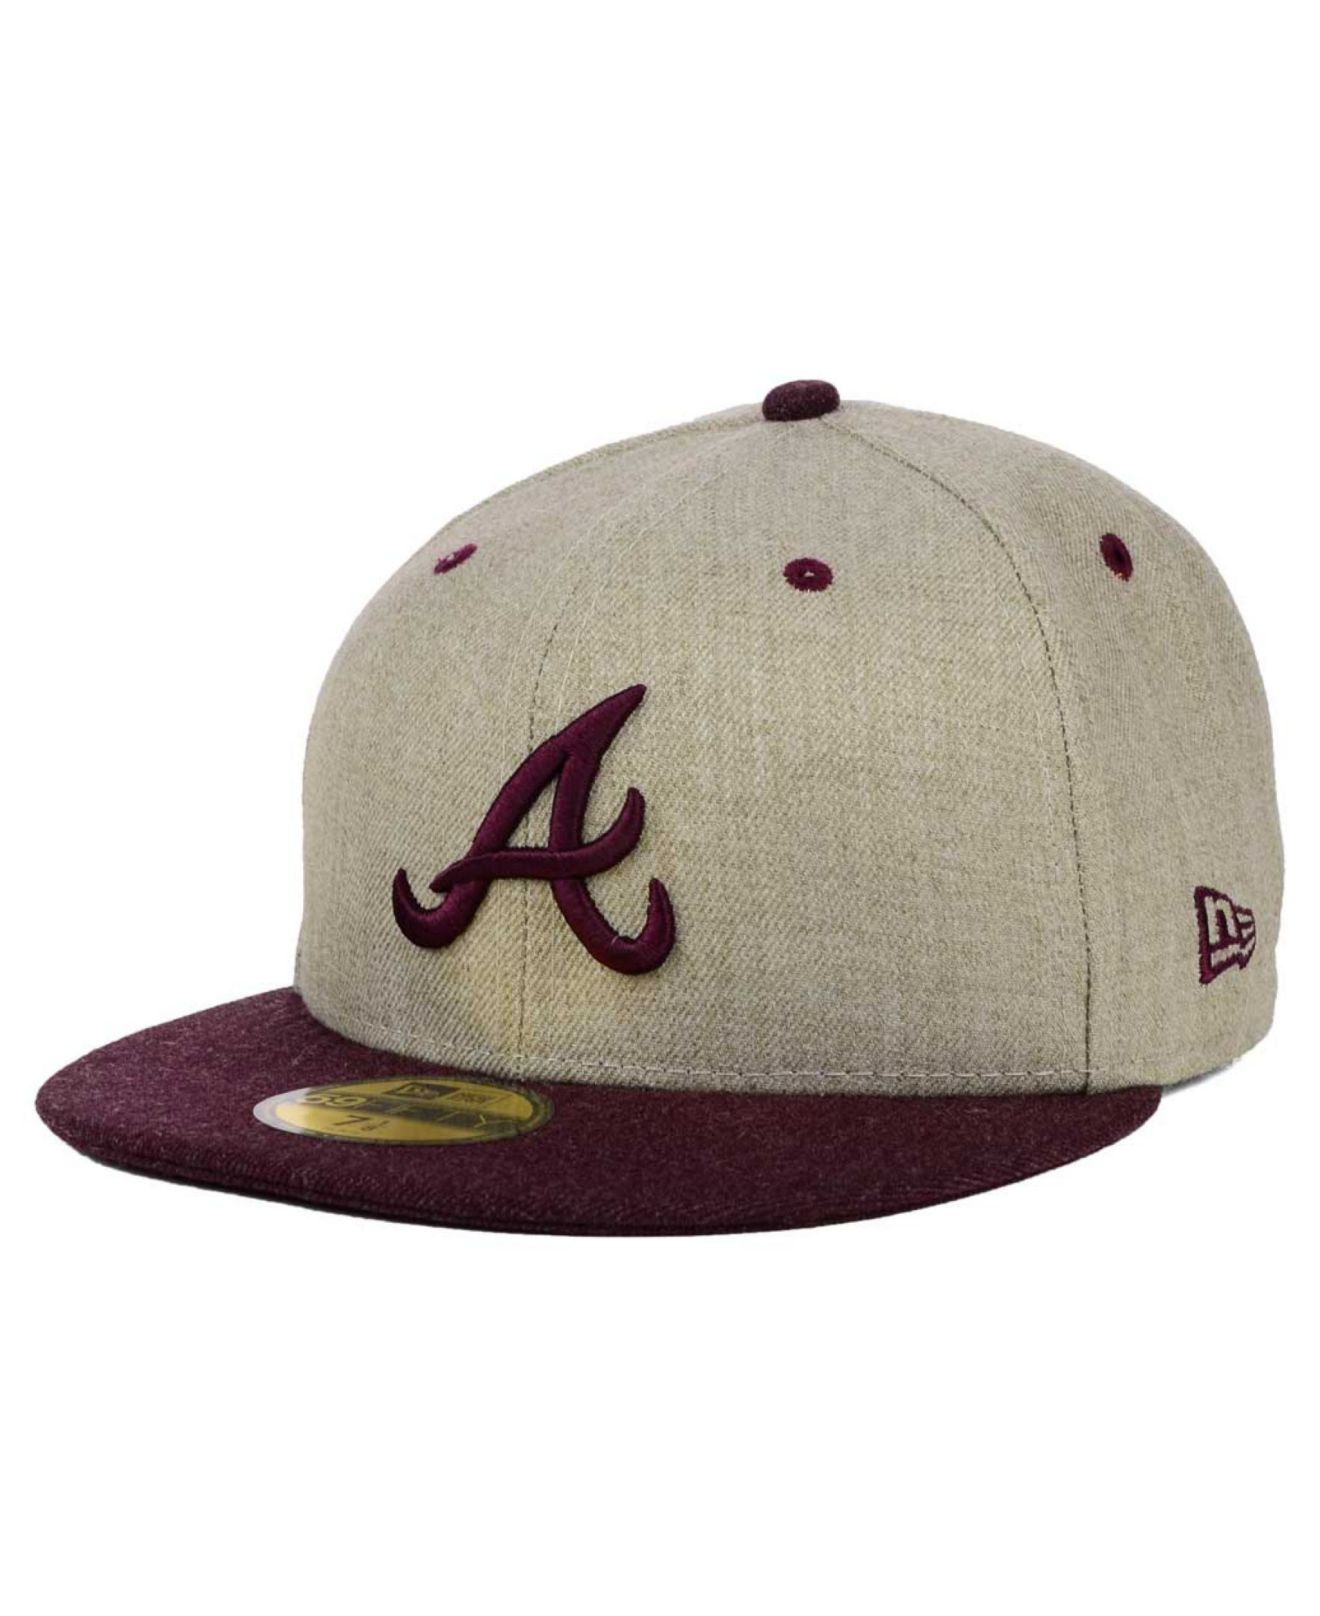 half off d00d9 ce50e ... low cost lyst ktz atlanta braves heather mashup 59fifty cap in natural  for men 02f8c d310f